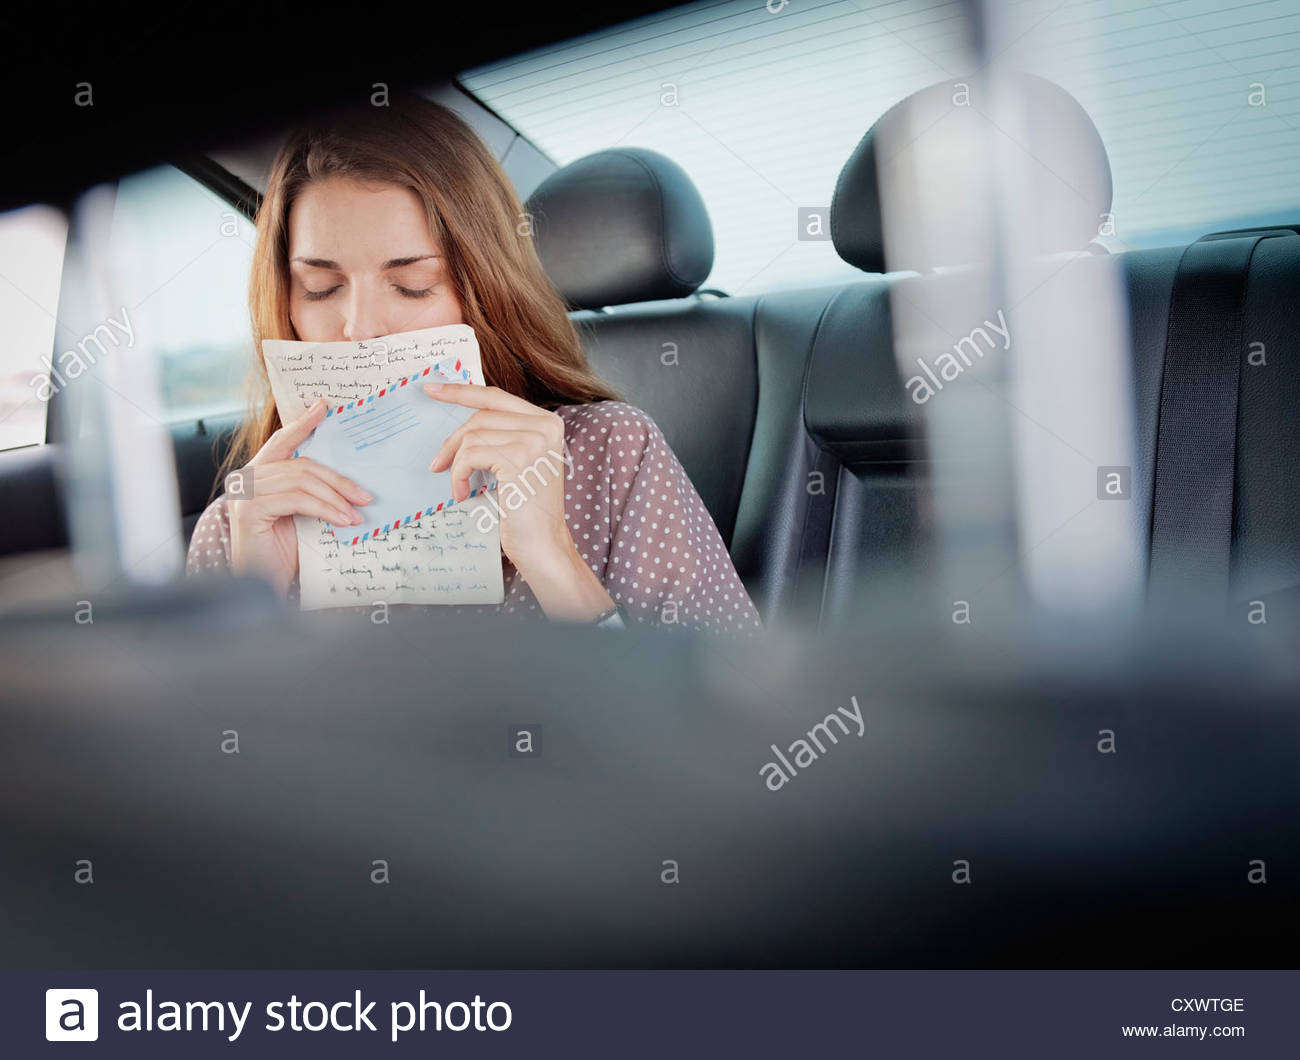 Woman kissing letter in backseat of car Stock Photo